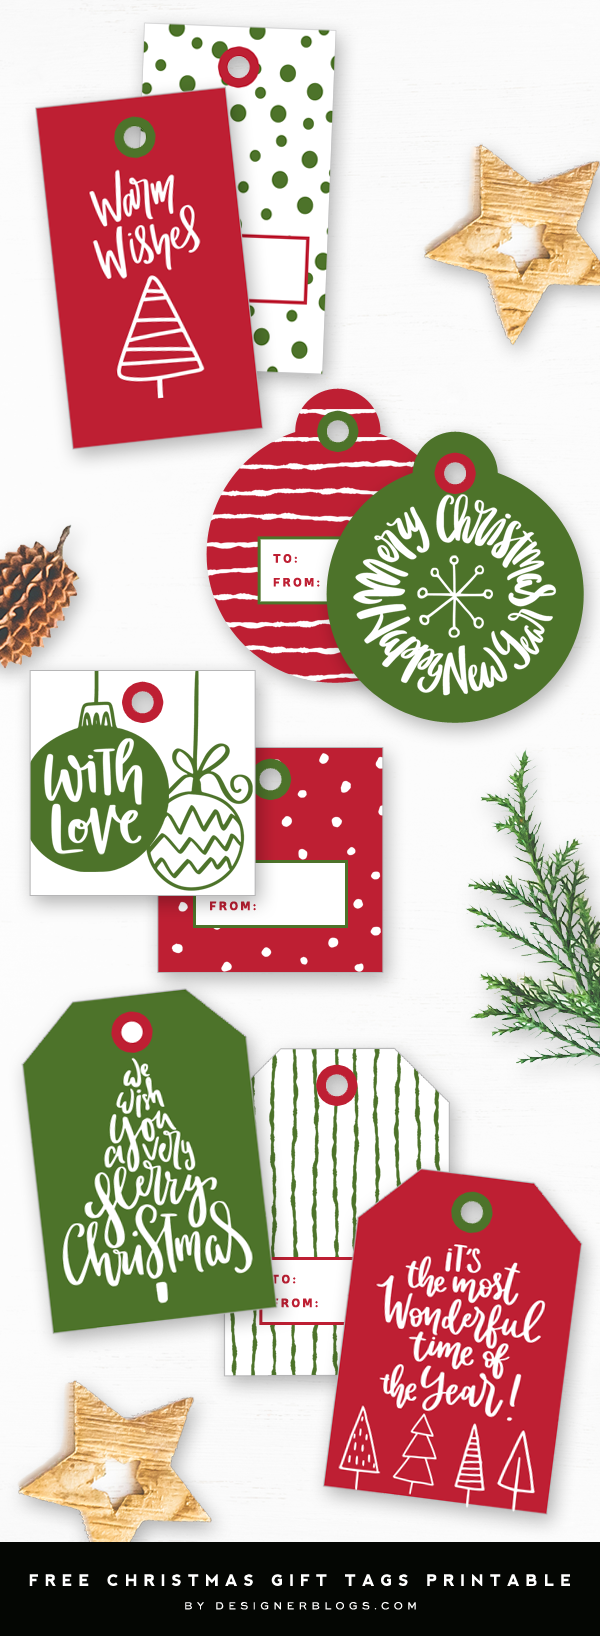 Free Printable Christmas Tags – 9 Different Designs!